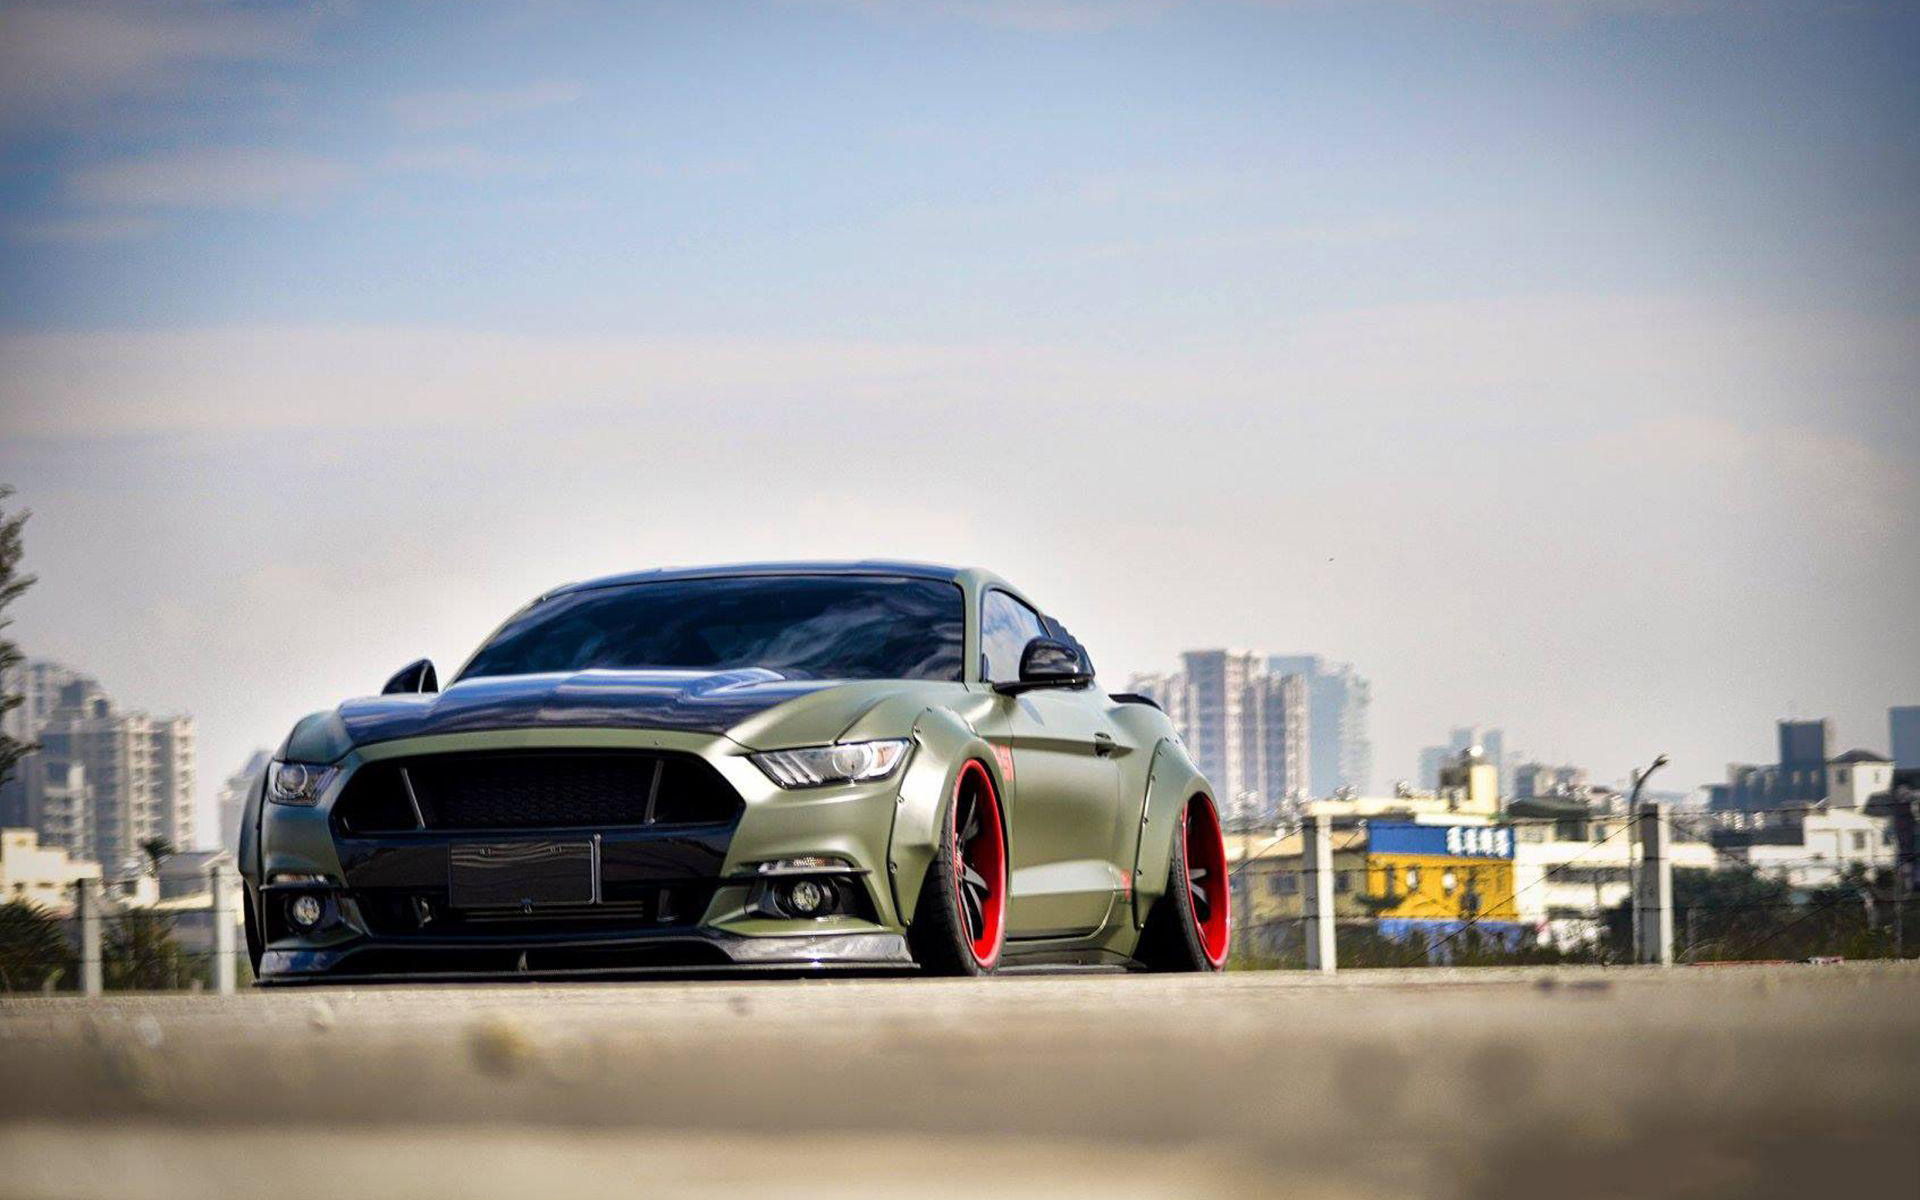 Liberty Walk, tuning, Ford Mustang GT, 2019 cars, supercars, Forgiato Wheels, S221-ECL, 2019 Ford Mustang, american cars, Ford